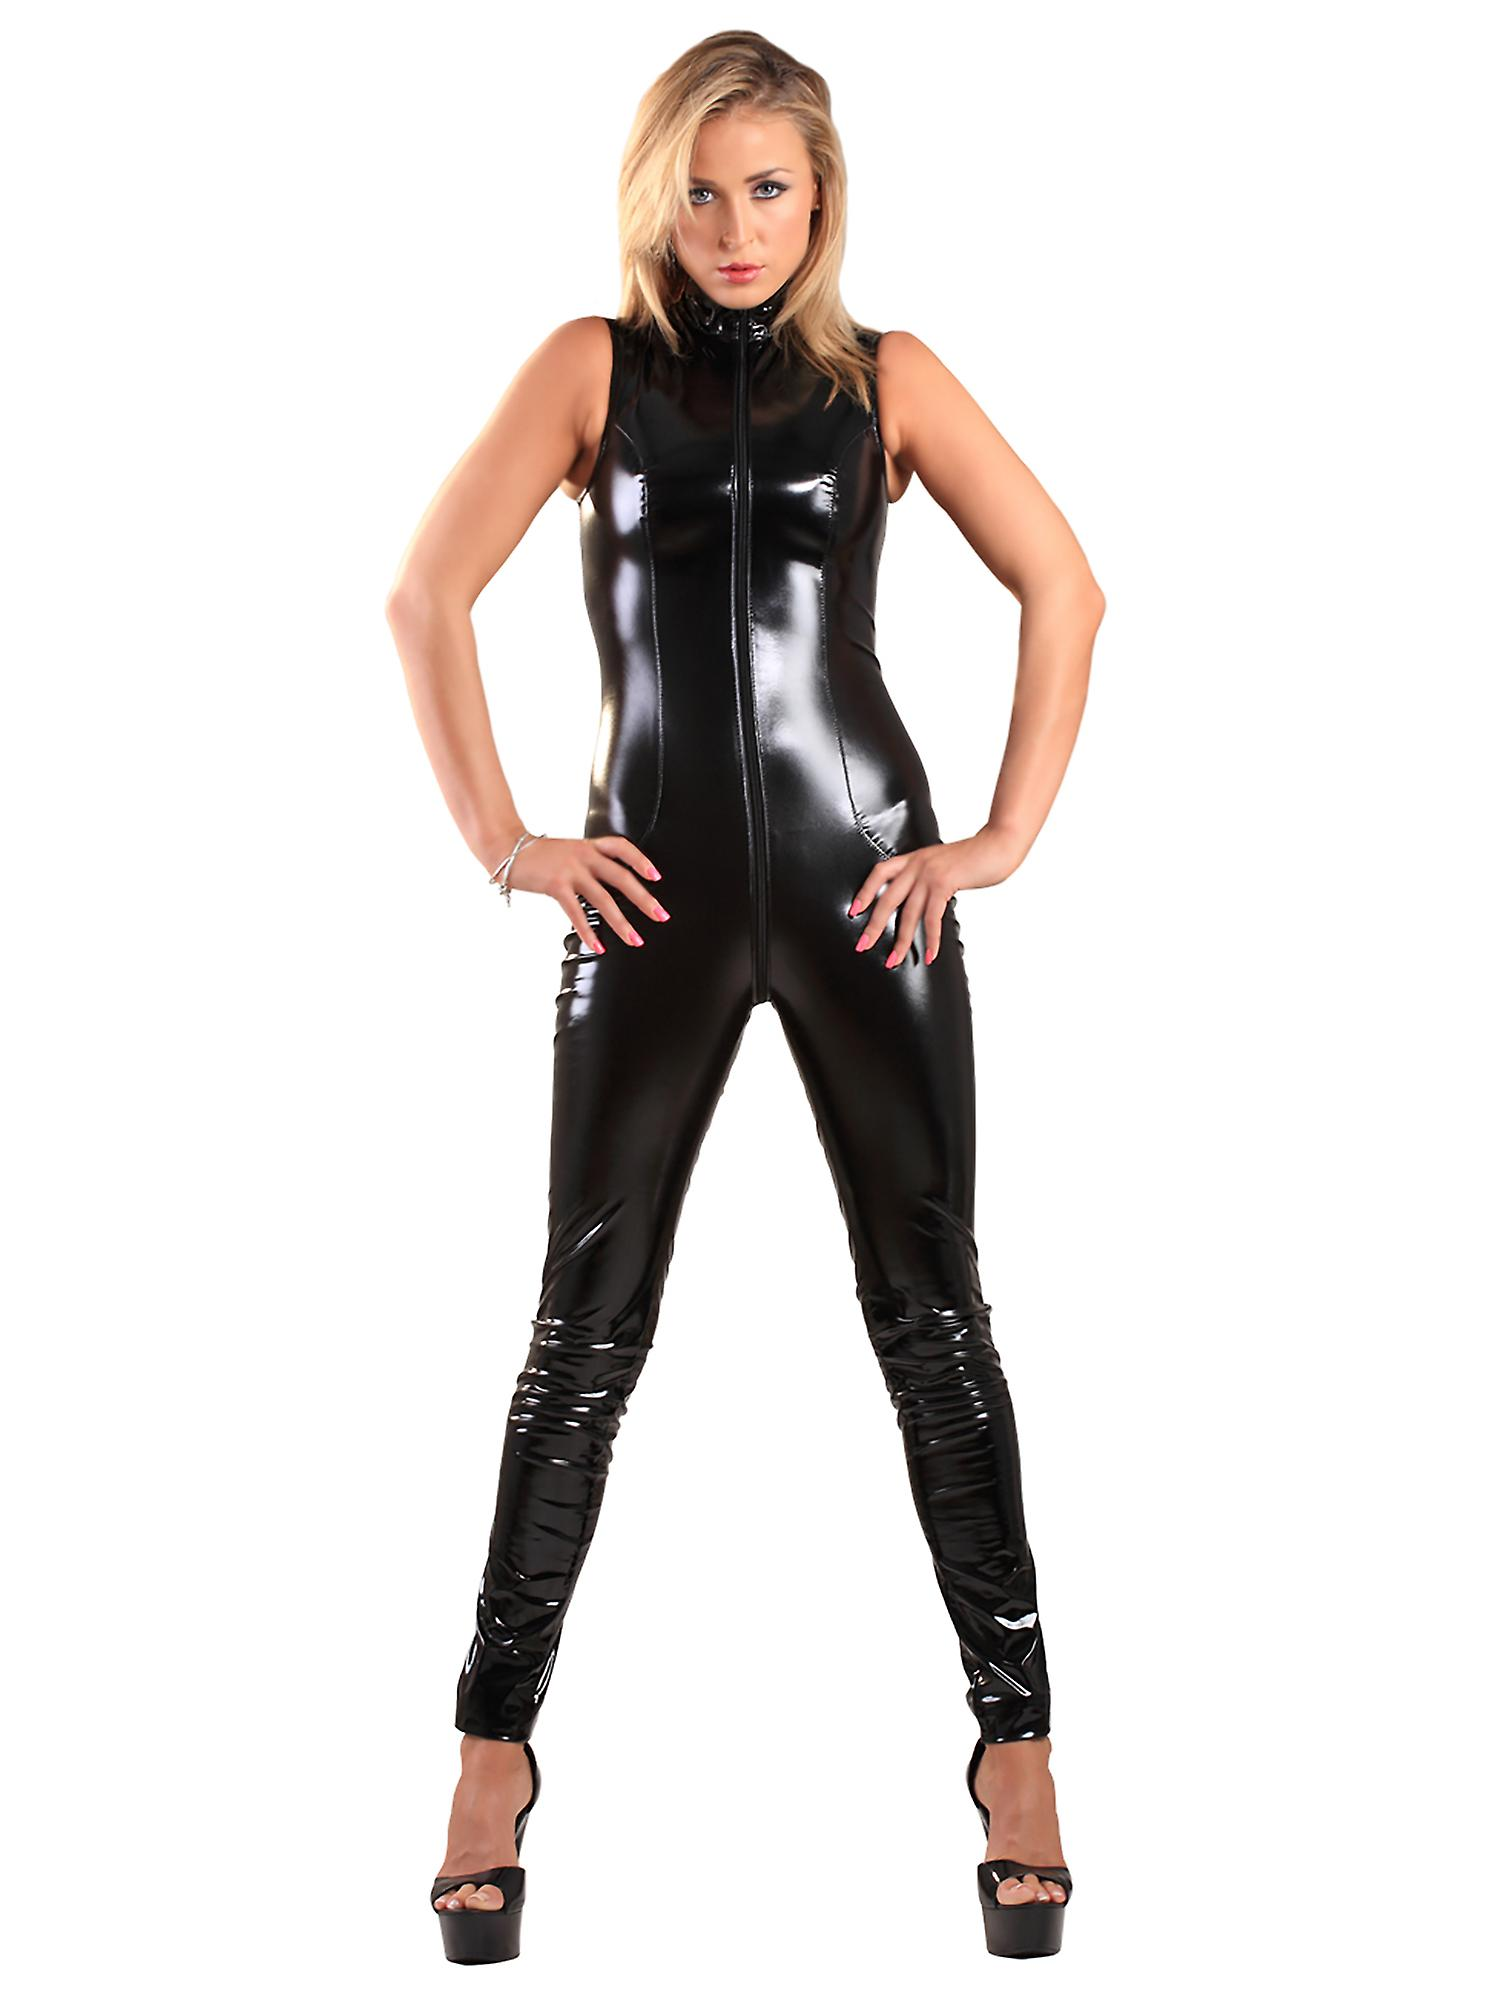 Honour Women's Sexy Catsuit in High Gloss PVC Sleeveless High Neck